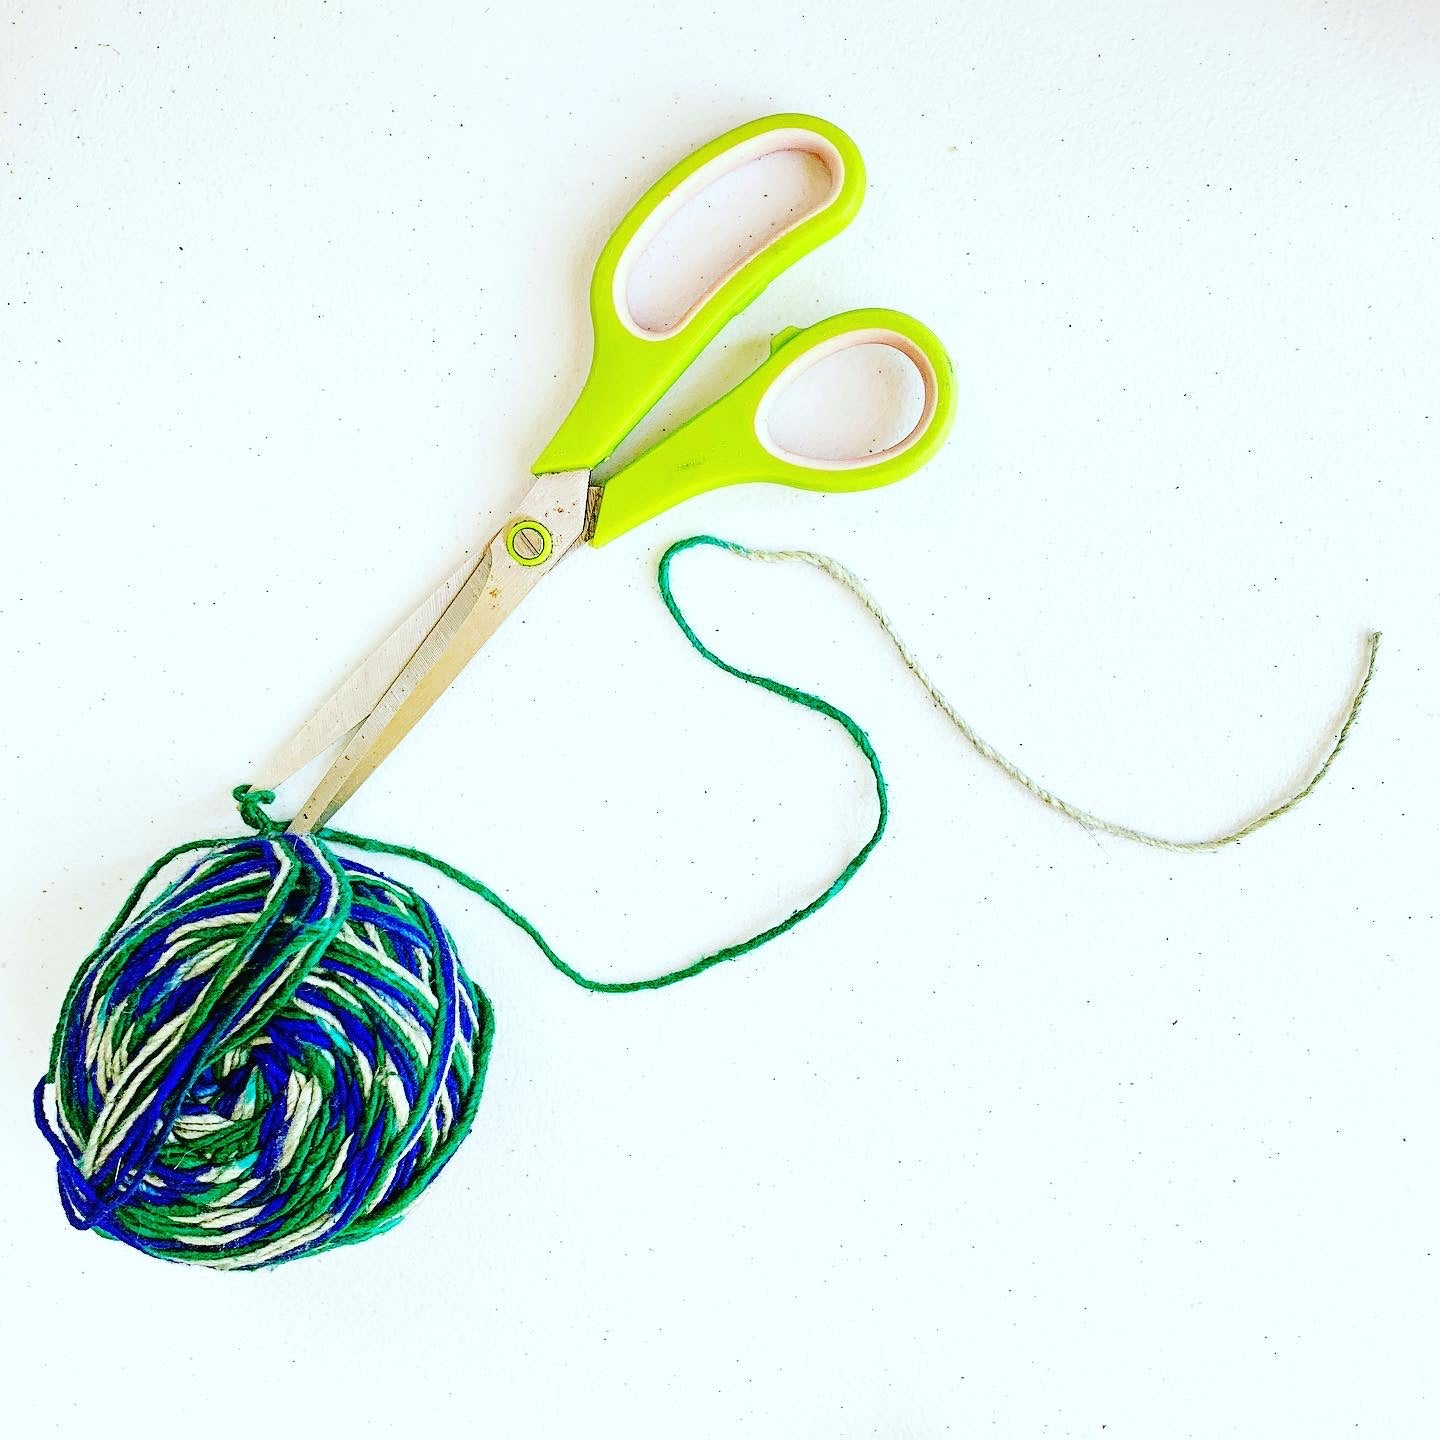 Photograph of a pair of green handled scissors preparing to cut blue green yarn.